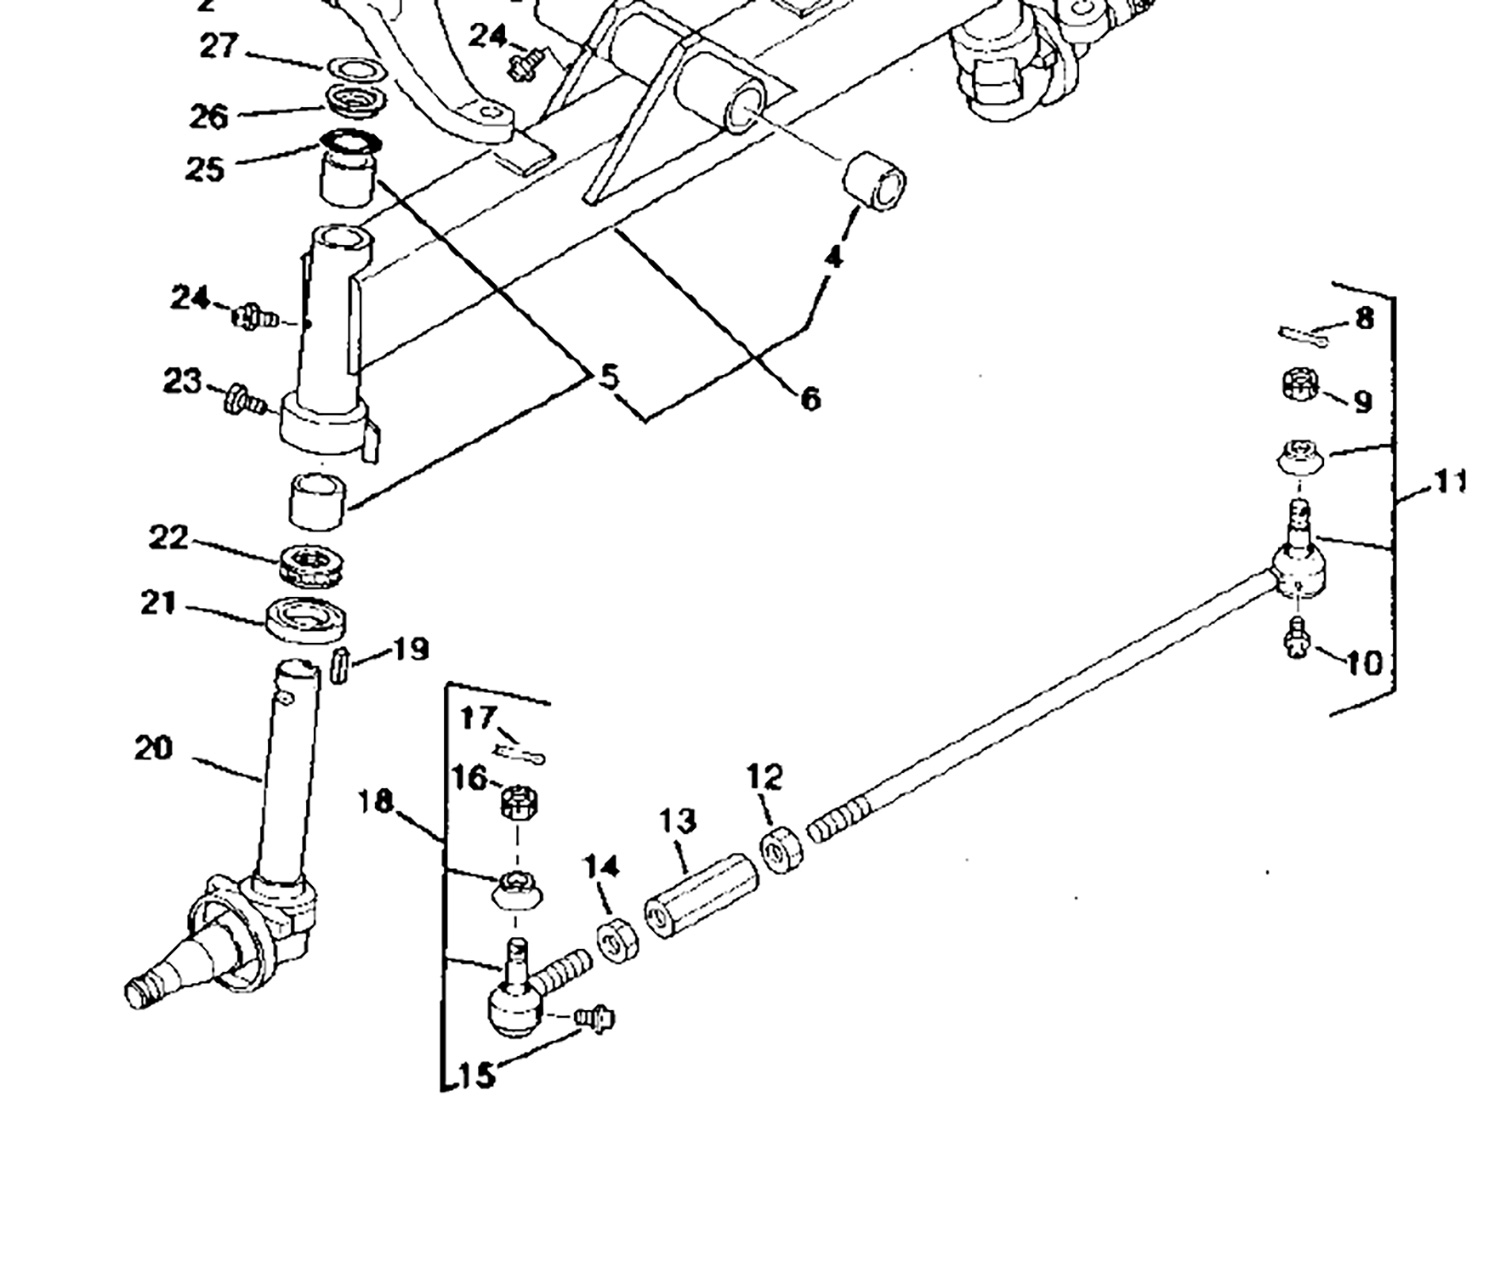 John Deere 755 Parts Diagram besides S777792 besides Search also Steering Arm Tie Rod Ends Knuckle Housing additionally 14wxj 1989 F 250 Need Diagram Replace Ignition. on john deere 4410 parts diagram